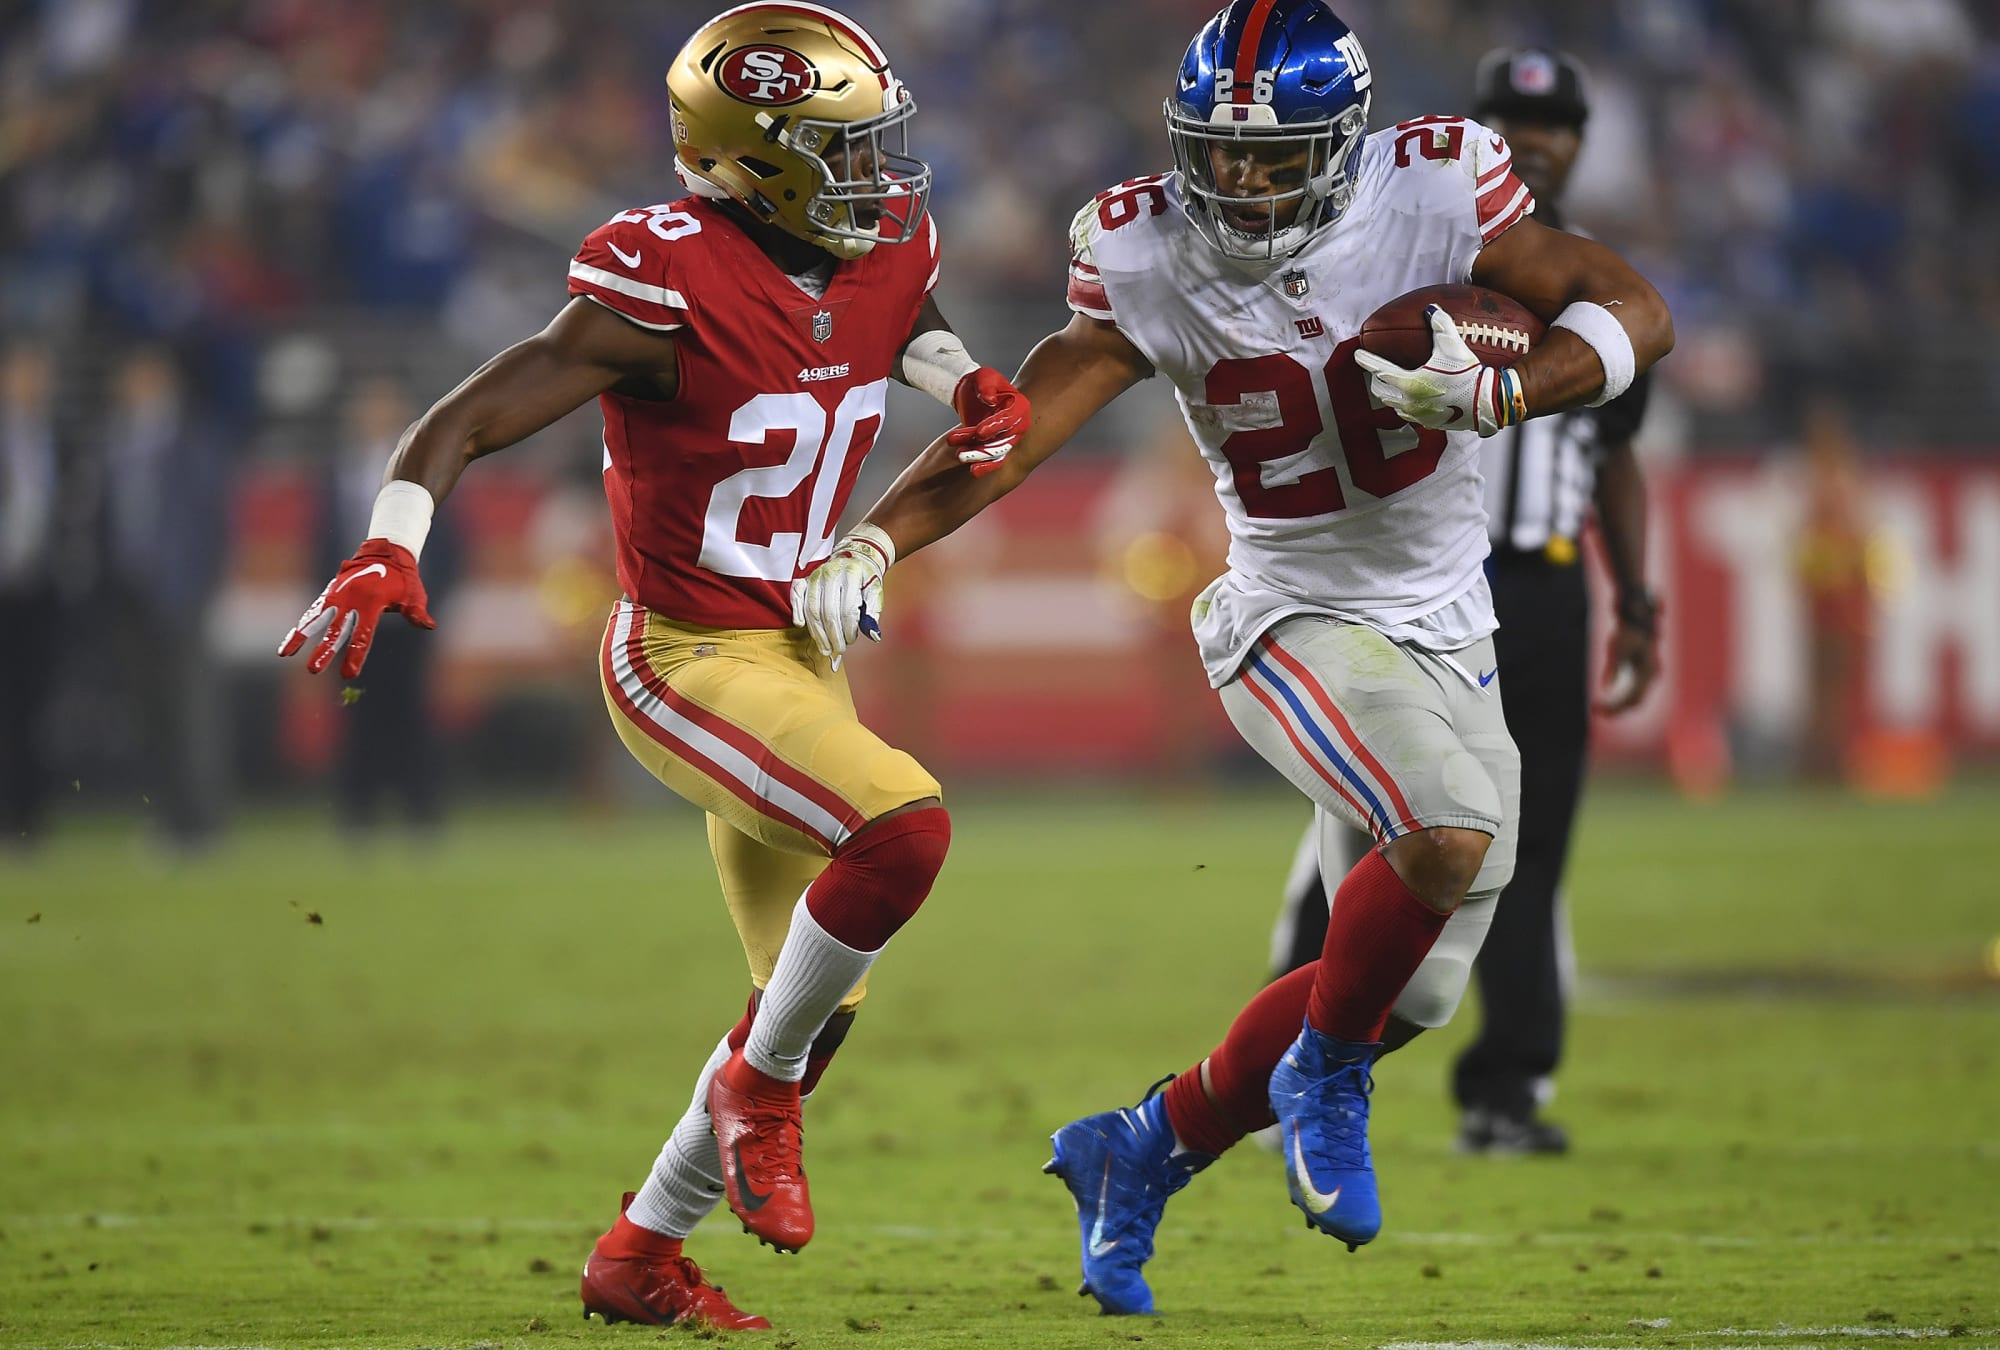 49ers vs giants - photo #31